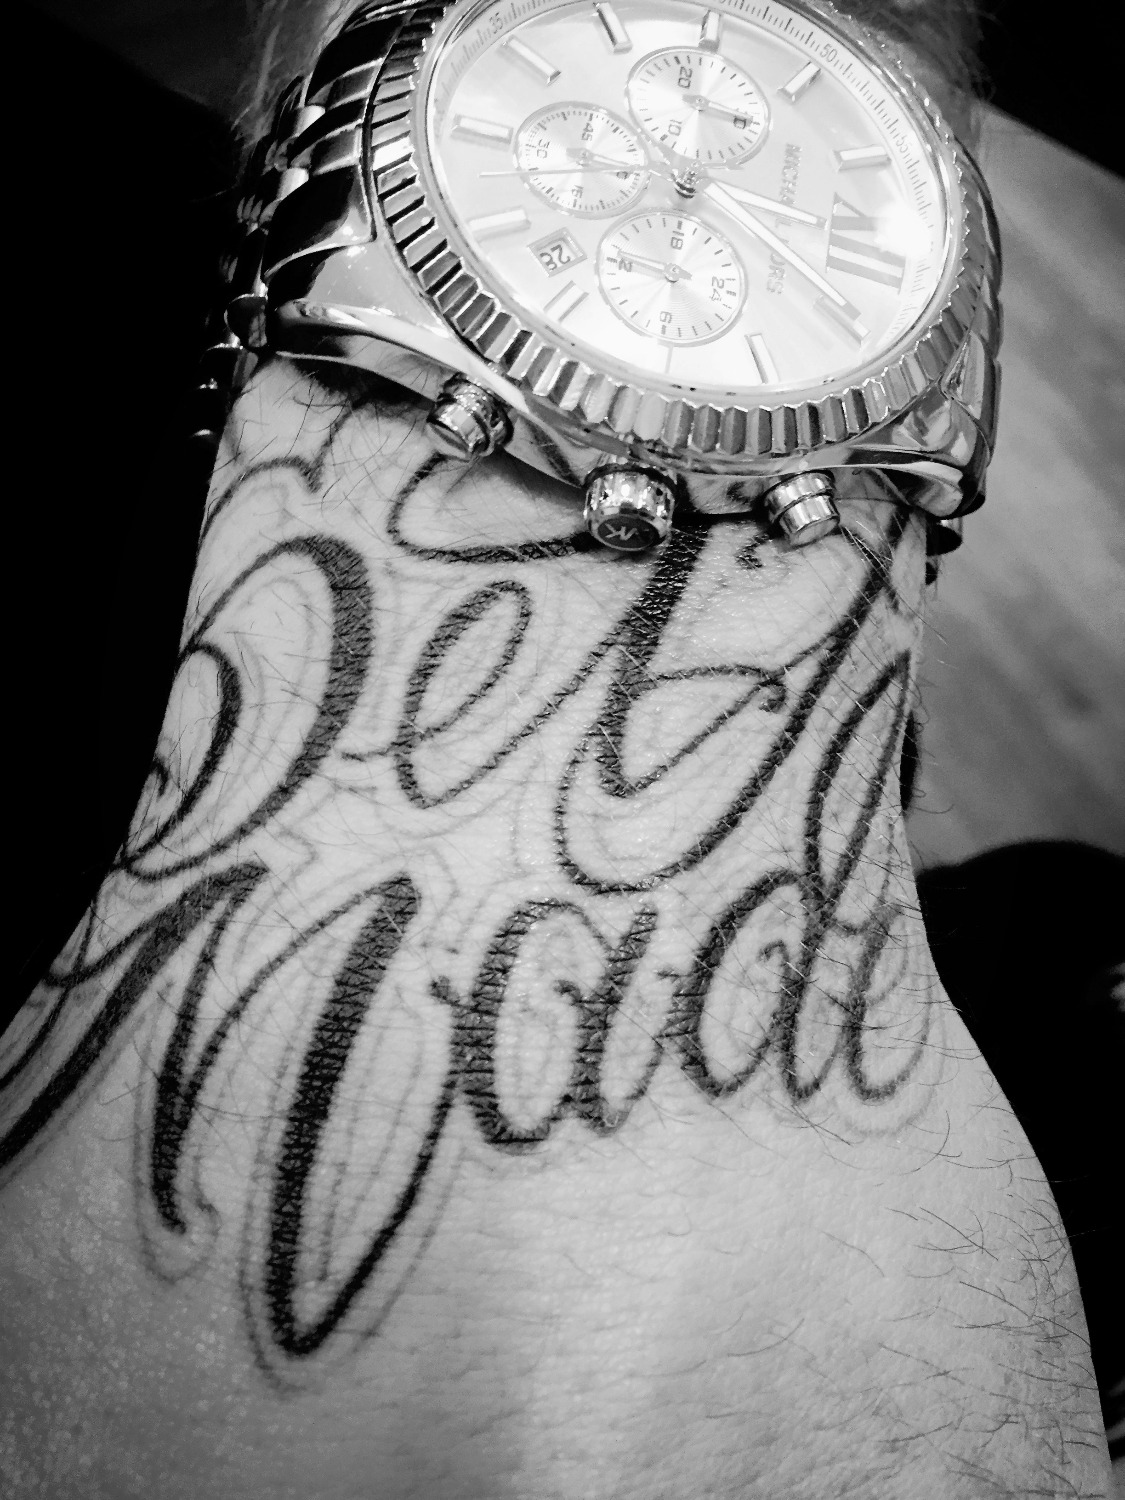 Script Hand Tattoo w/ Watch